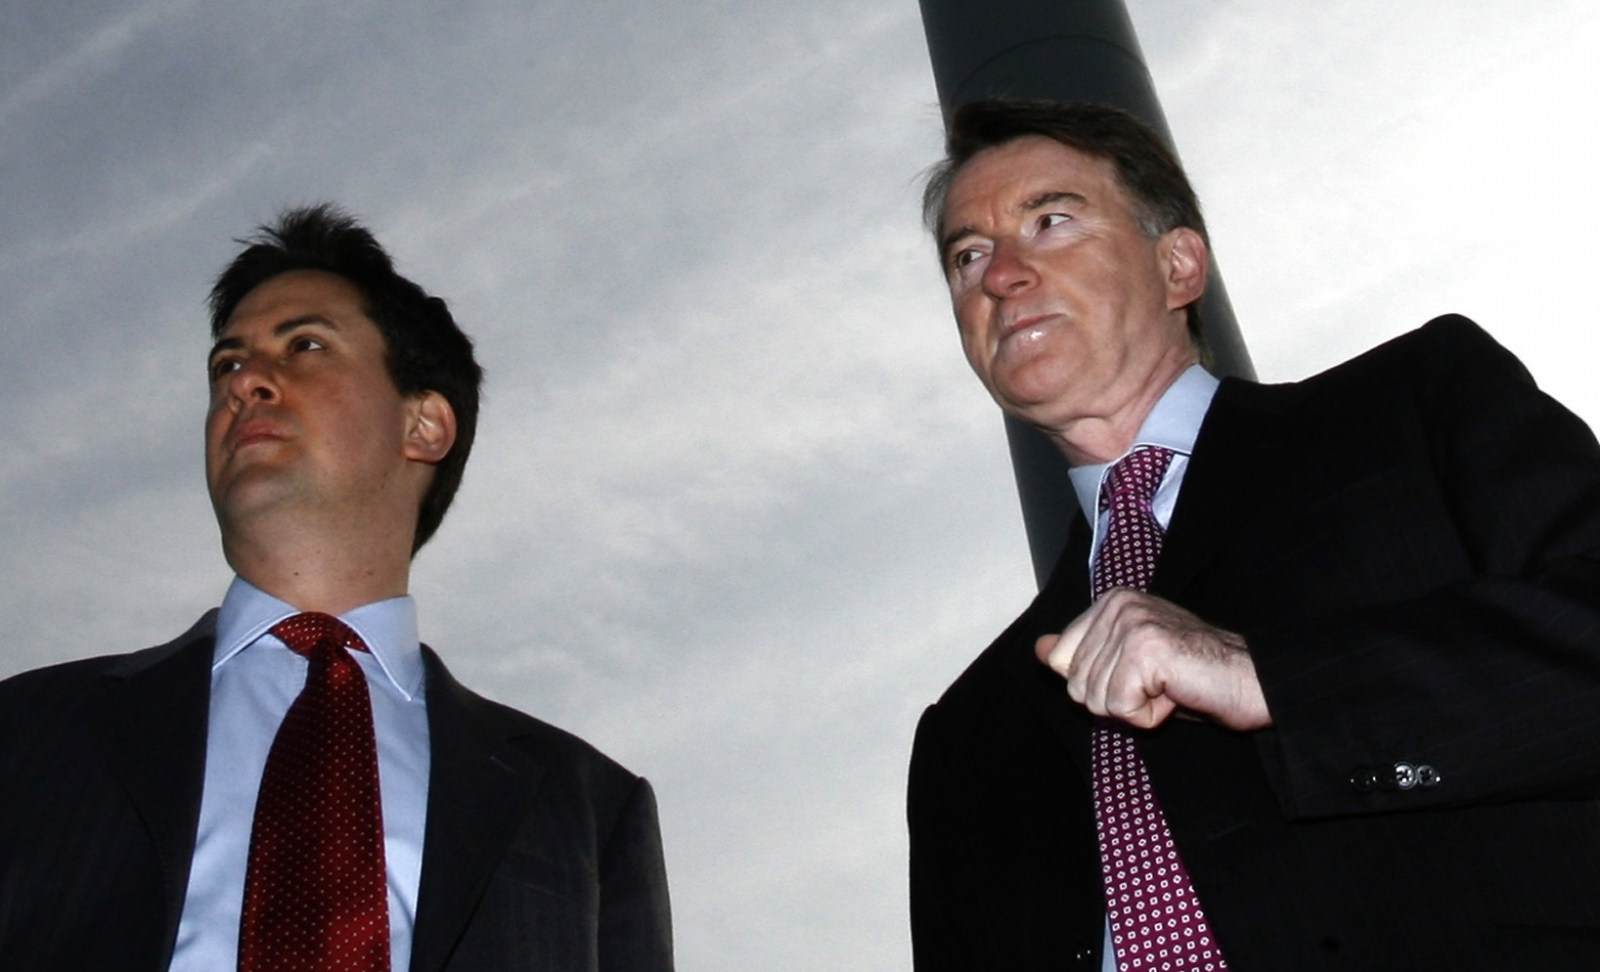 Peter Mandelson and Ed Miliband